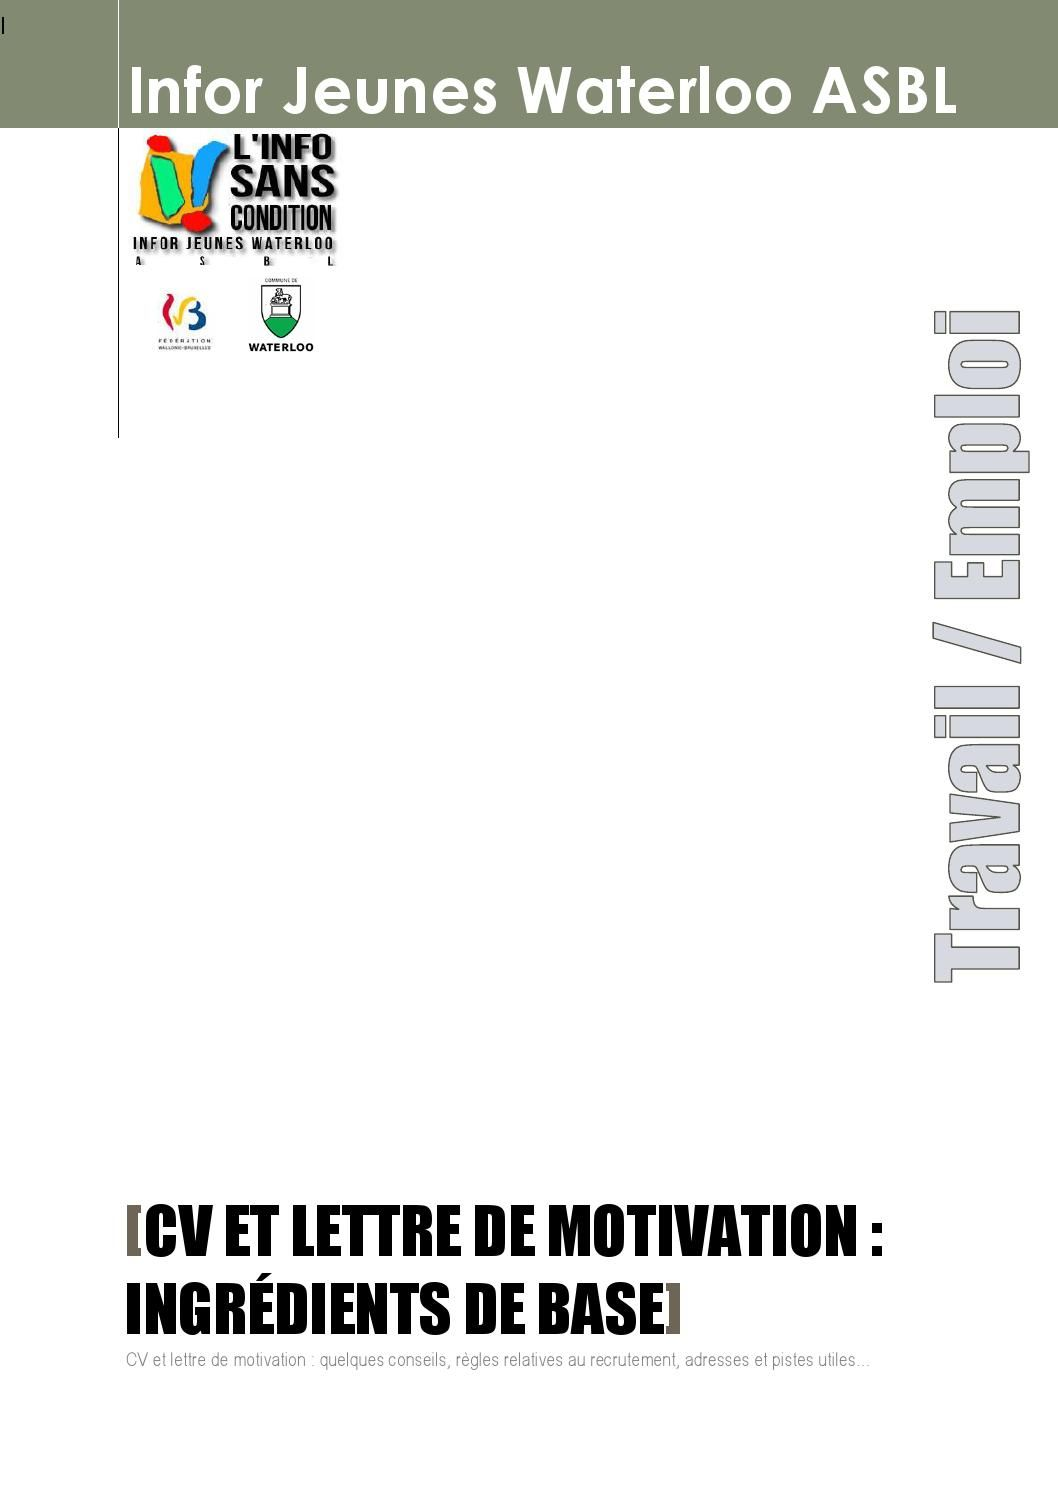 cv et lettre de motivation  ingr u00e9dients de base